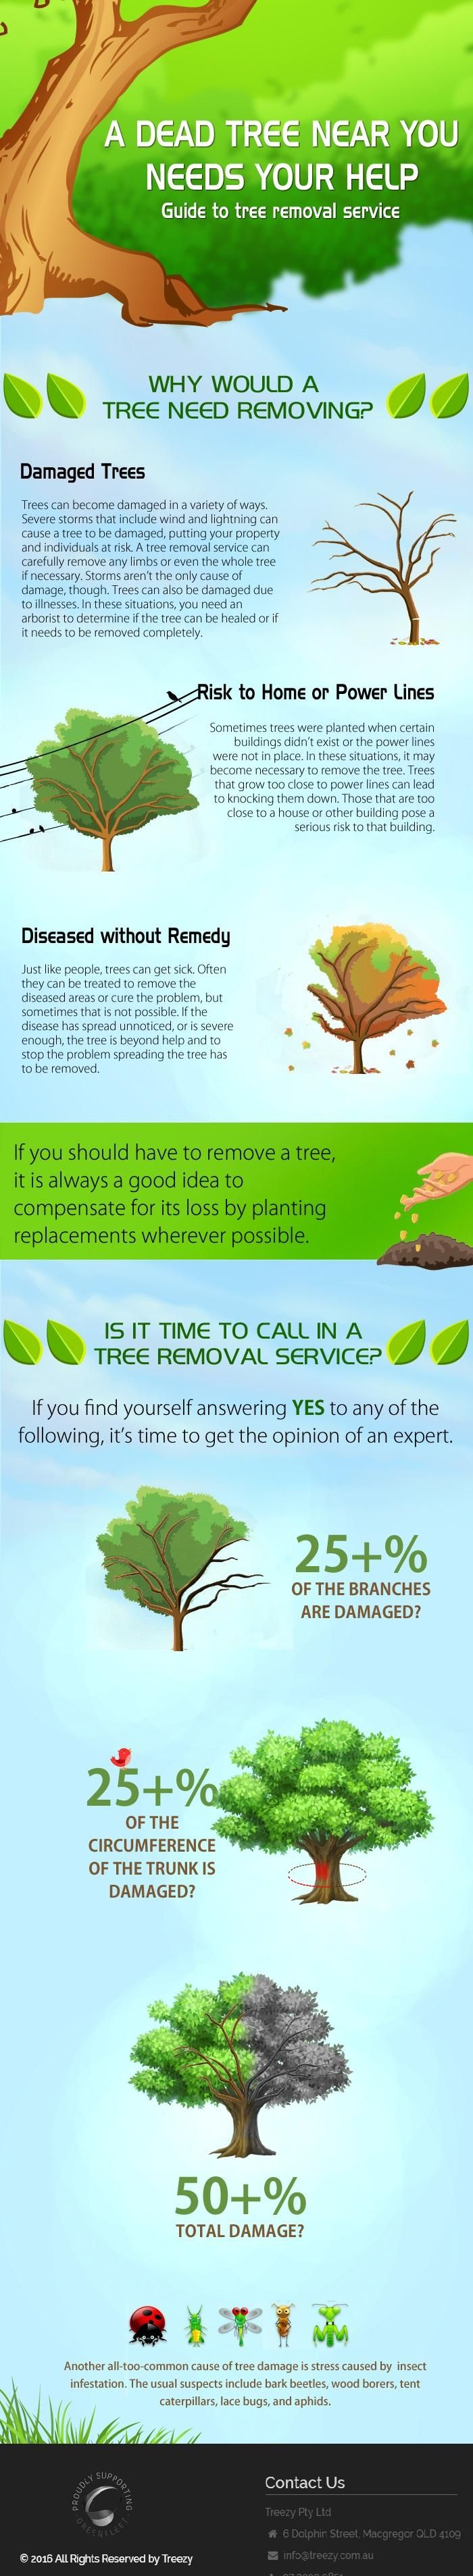 A dead Tree Near You Need Your Help. Guide of Tree Removal Treezy Pty Ltd. Treezy Tree Removal Brisbane Southside expert in Tree Removal , Stump Grinding, Tree lopping, Mulching & Tree Wood chipping and Tree Cutting Services. Call now 07 3999 9851  http://www.treezy.com.au/   #treezy #treeremoval #Treelopping #Trees #Gardening #treecare #Brisbane